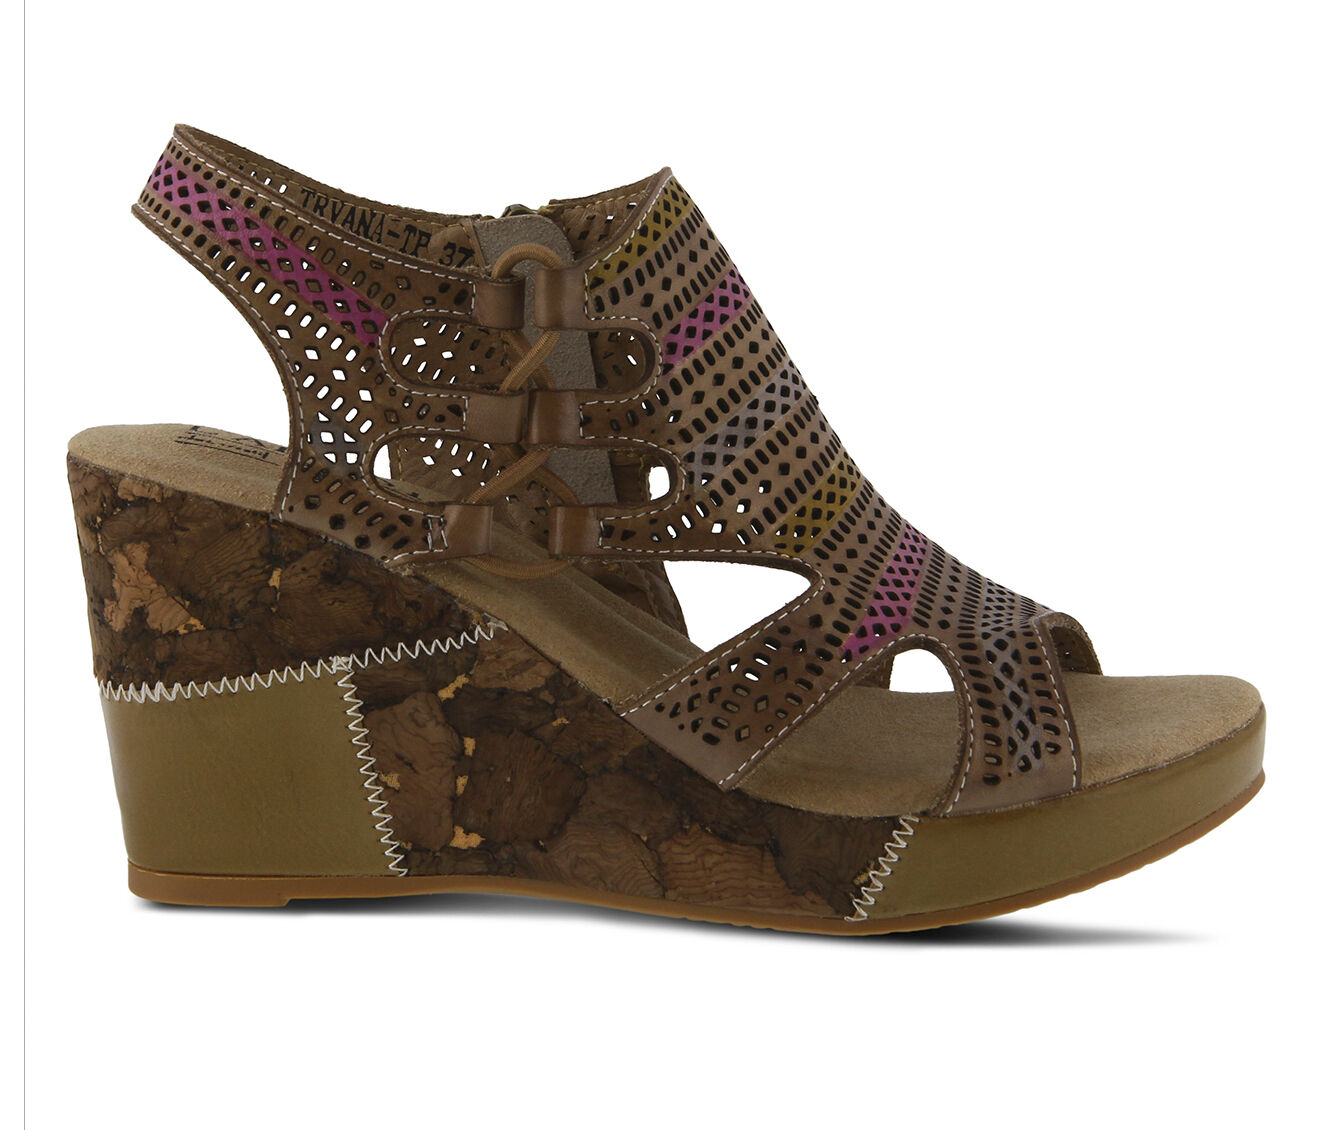 For Sale Women's L'ARTISTE Irvana Wedges Taupe